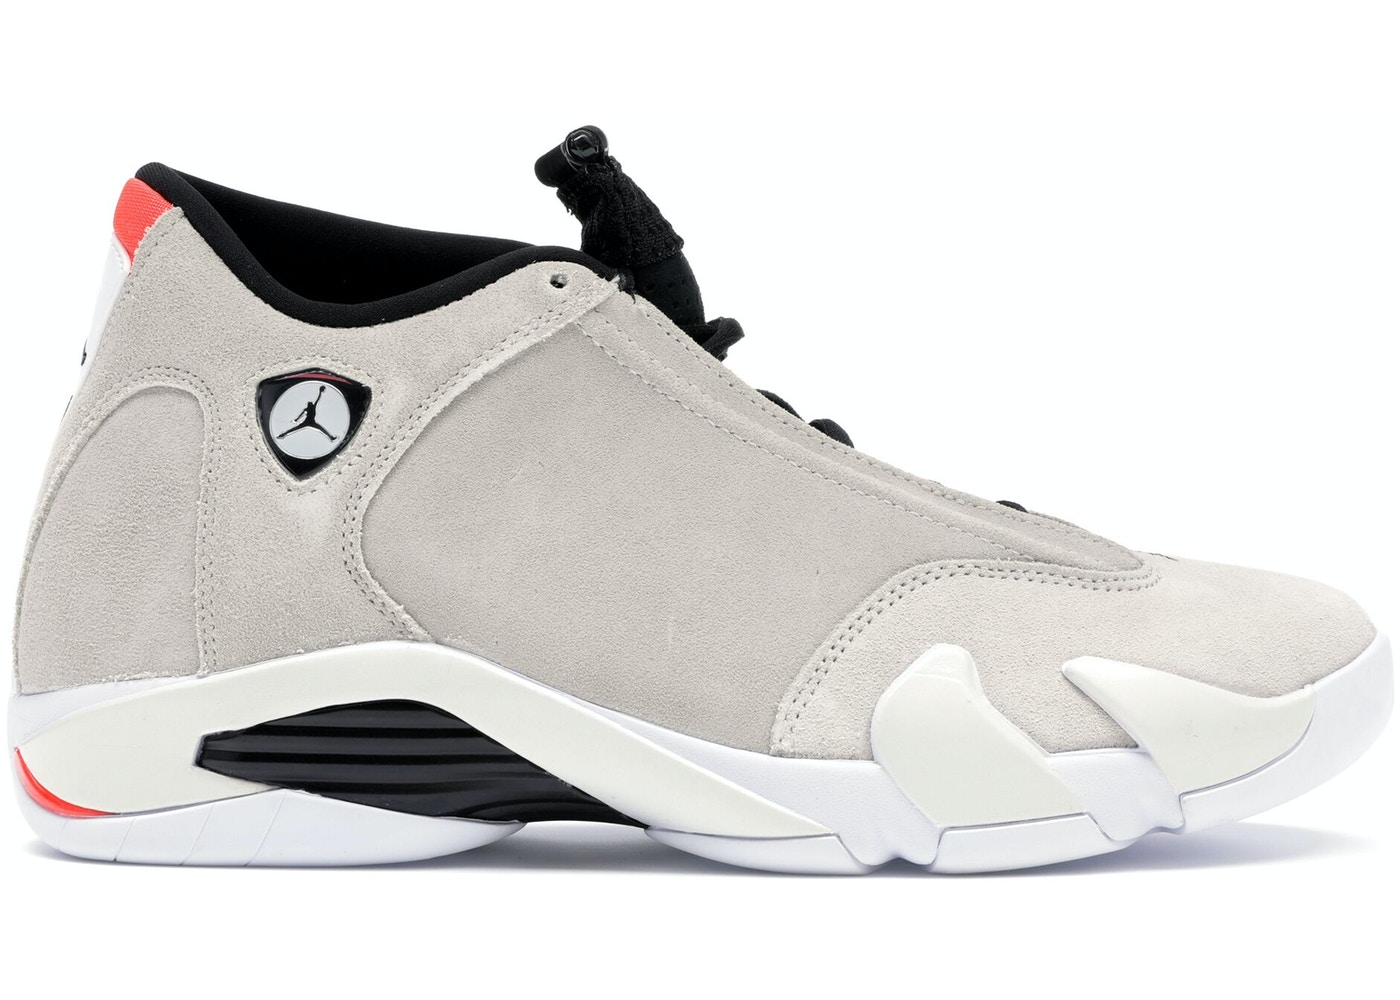 4281f238885 Buy Air Jordan 14 Shoes & Deadstock Sneakers